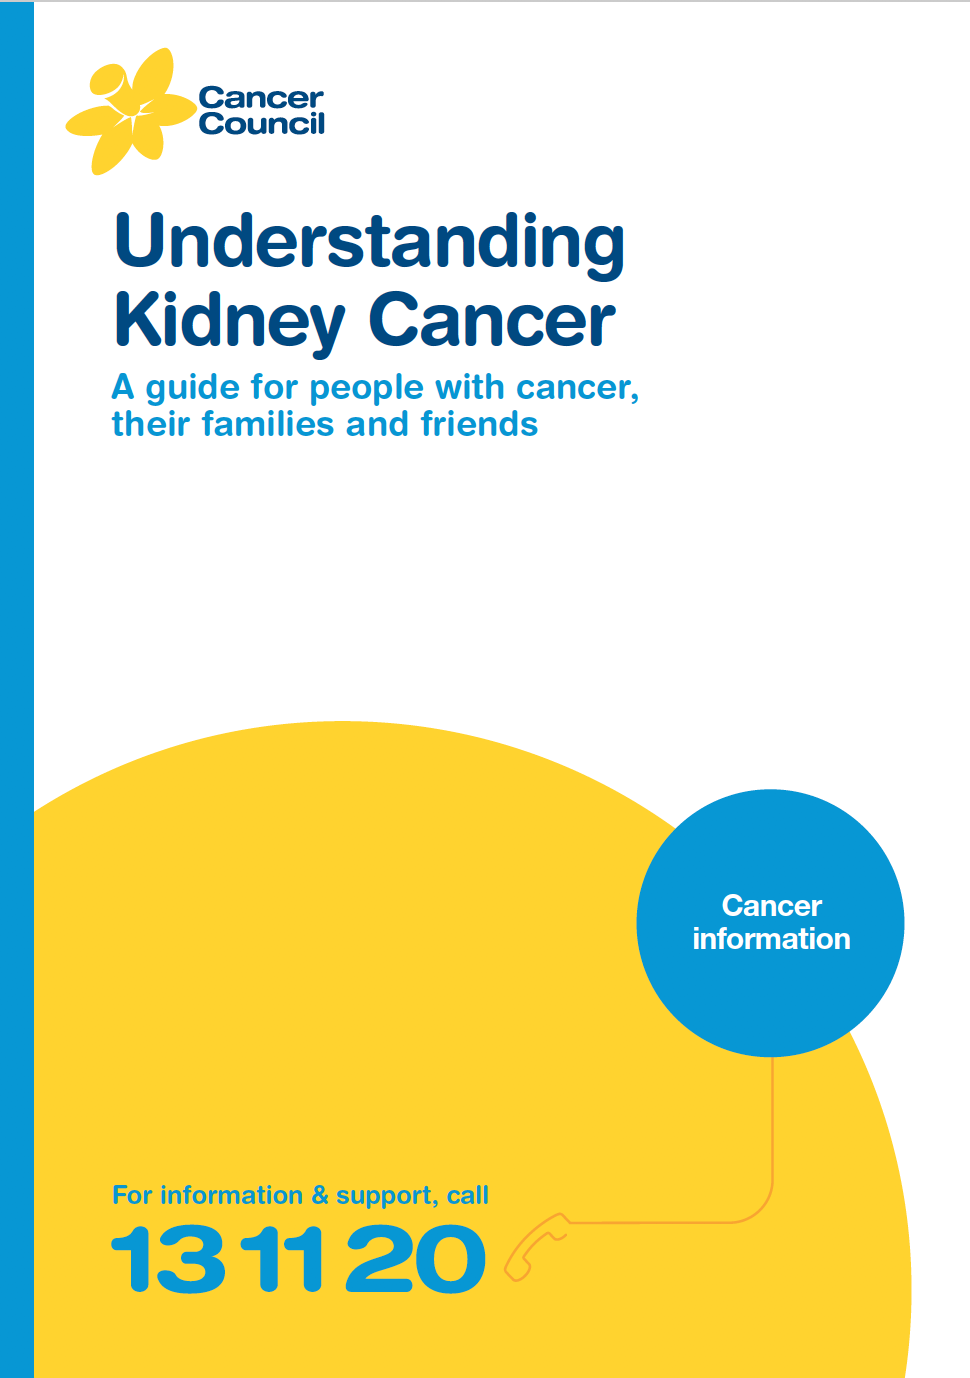 Understanding Kidney Cancer - A guide for people with cancer, their families and friends